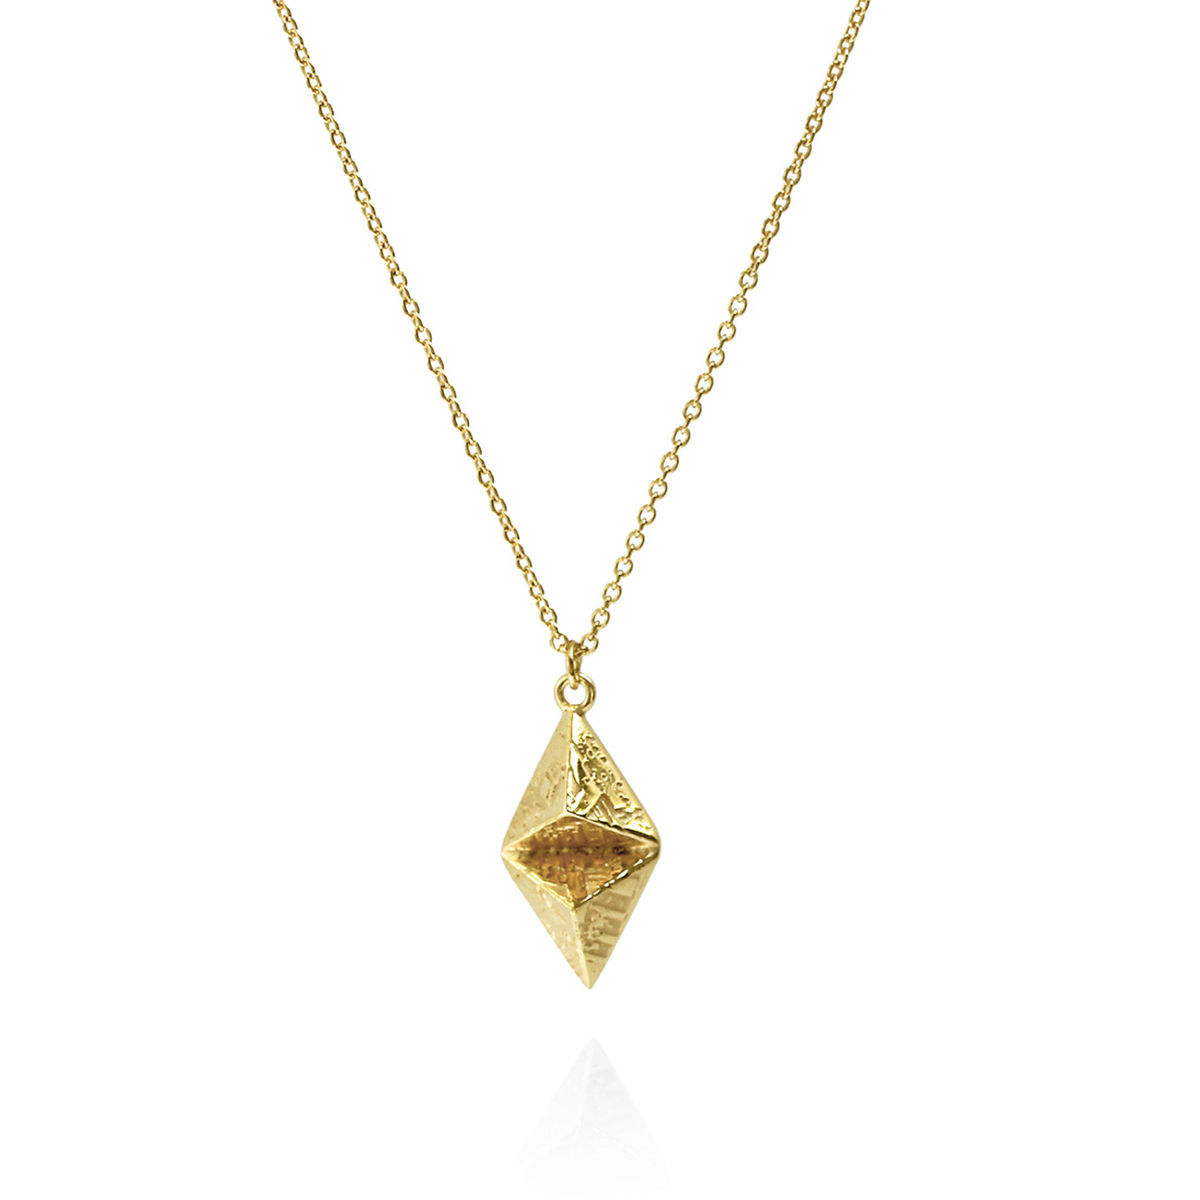 SOUVENIR double pyramid pendant MED - gold plated silver - product image